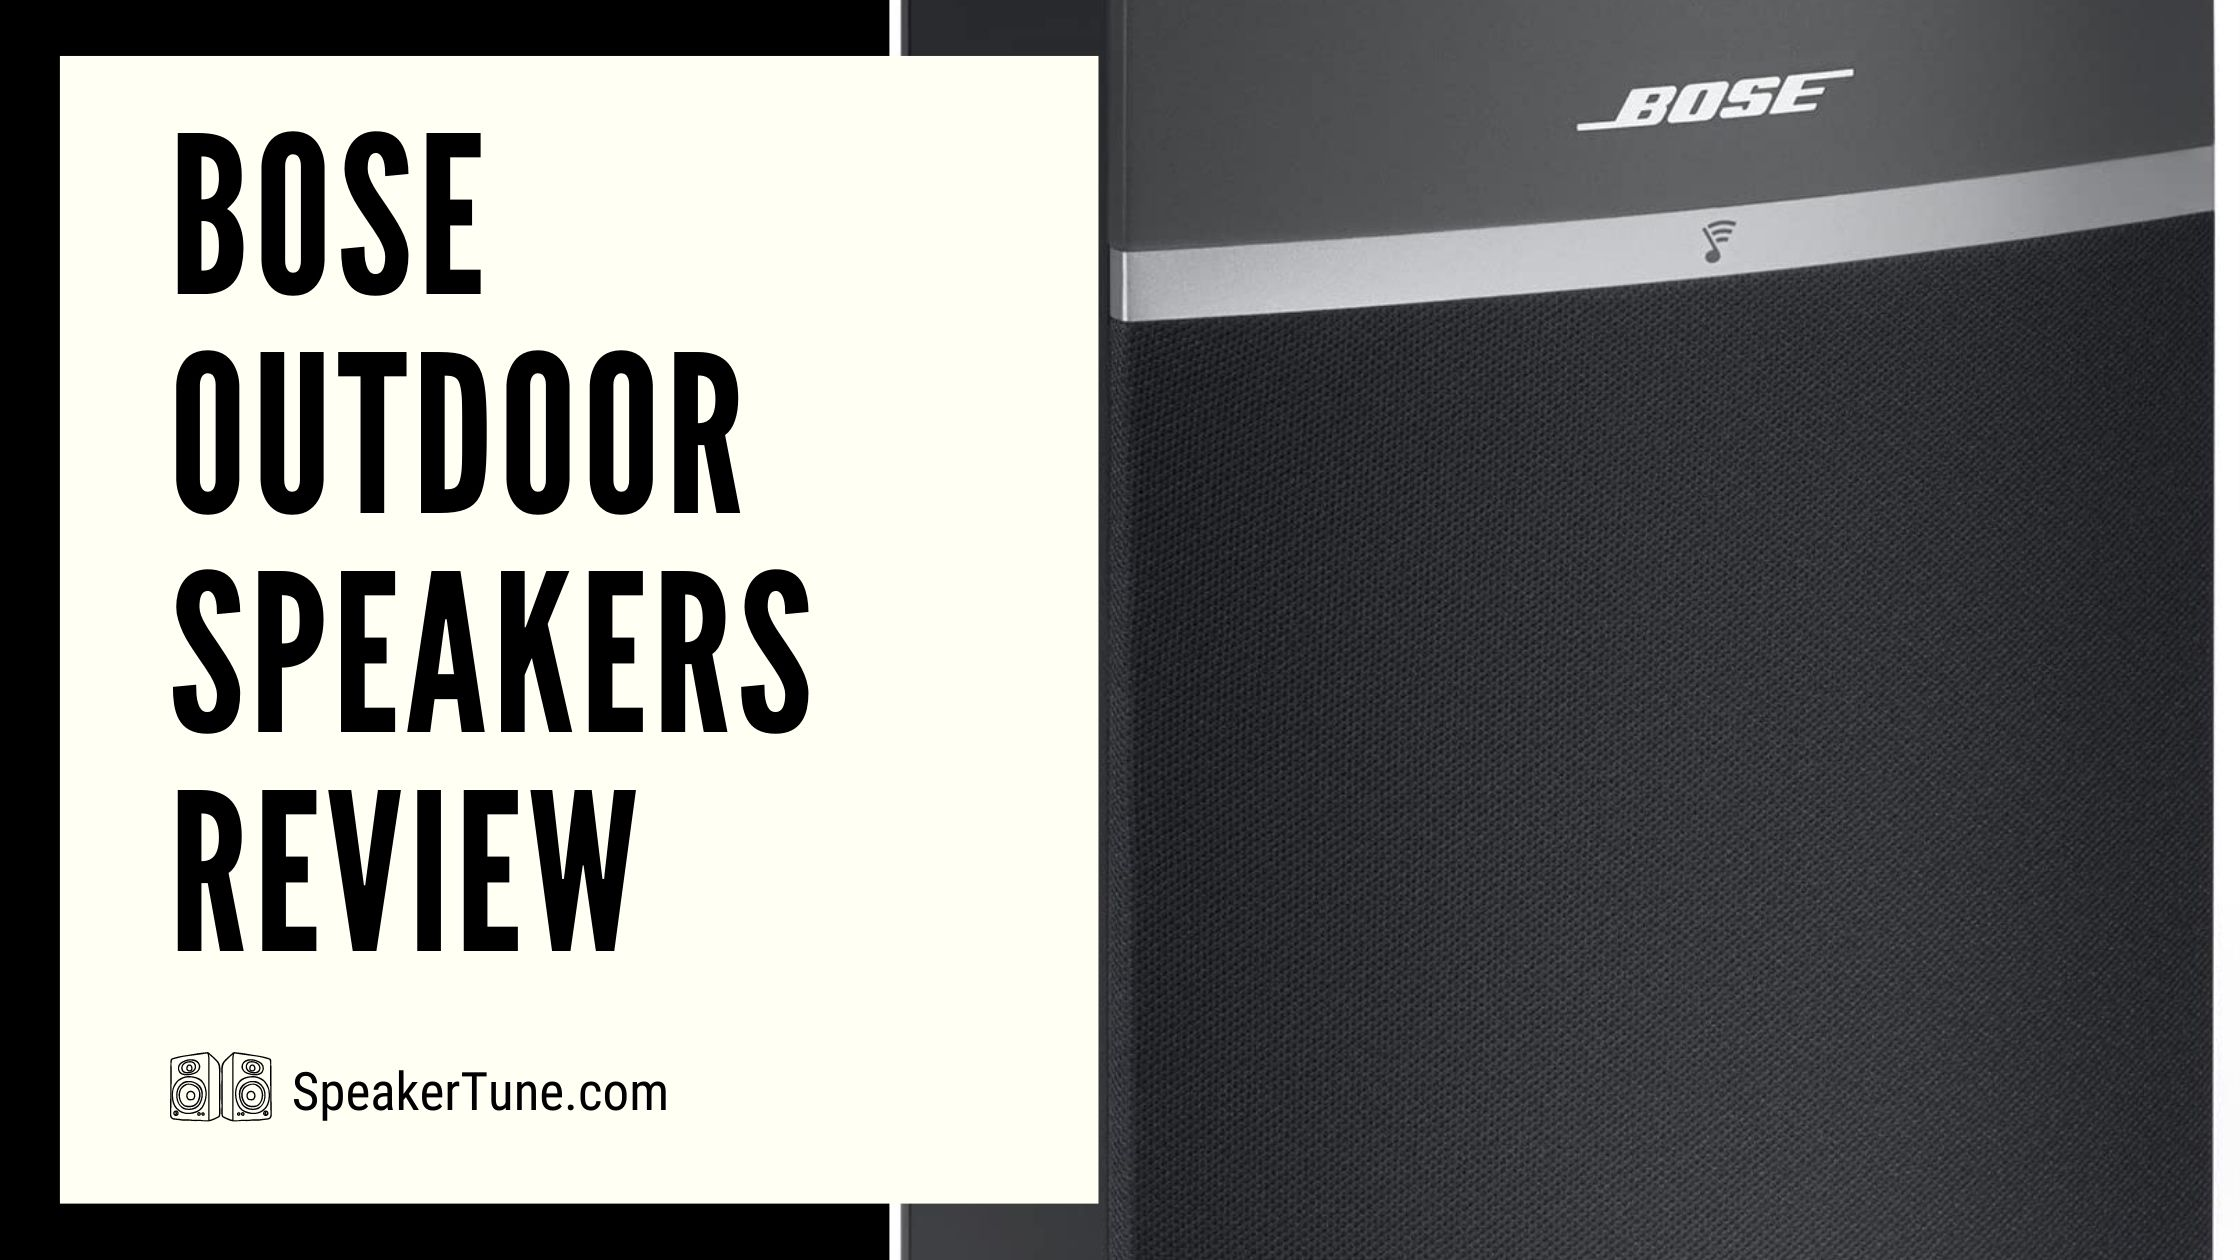 ST-bose-outdoor-speakers-review